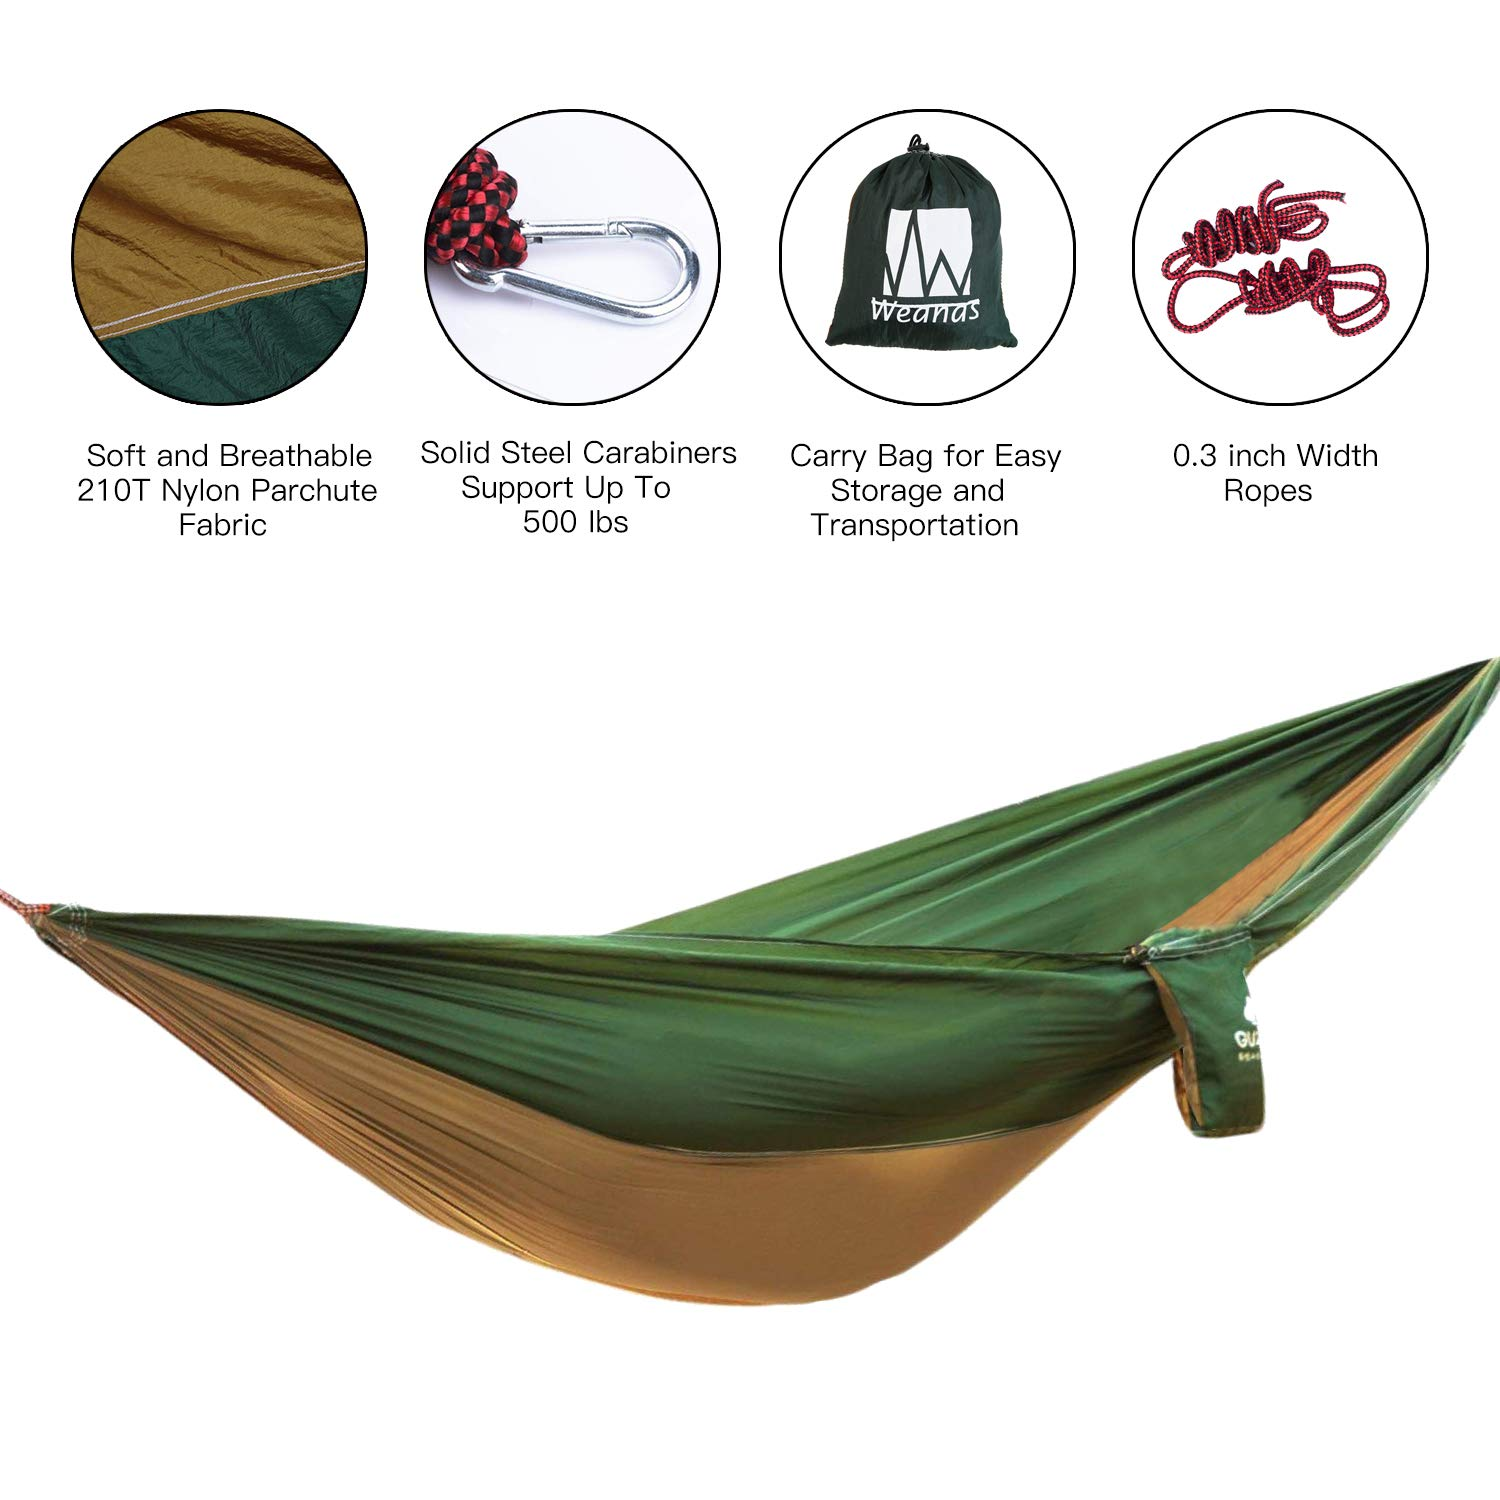 Weanas Extra Large Hammock Ultralight, Lightweight Portable Parachute Nylon Outdoor Camping Hammock Backpacking, Hiking, Beach, Travel, Garden, Yard Extra Single – Brown Green